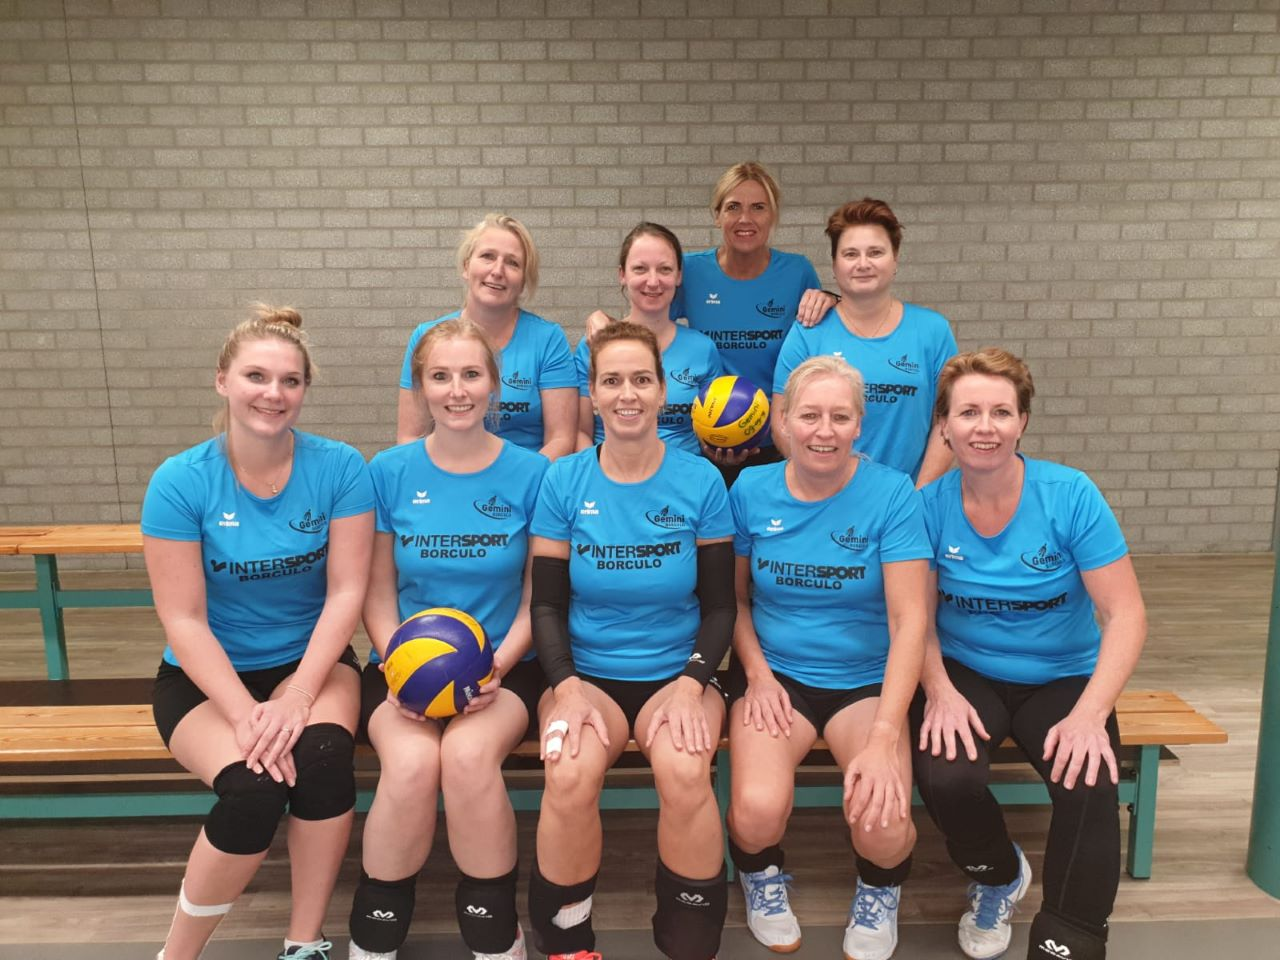 Gemini Borculo - Team Recreanten Dames 1